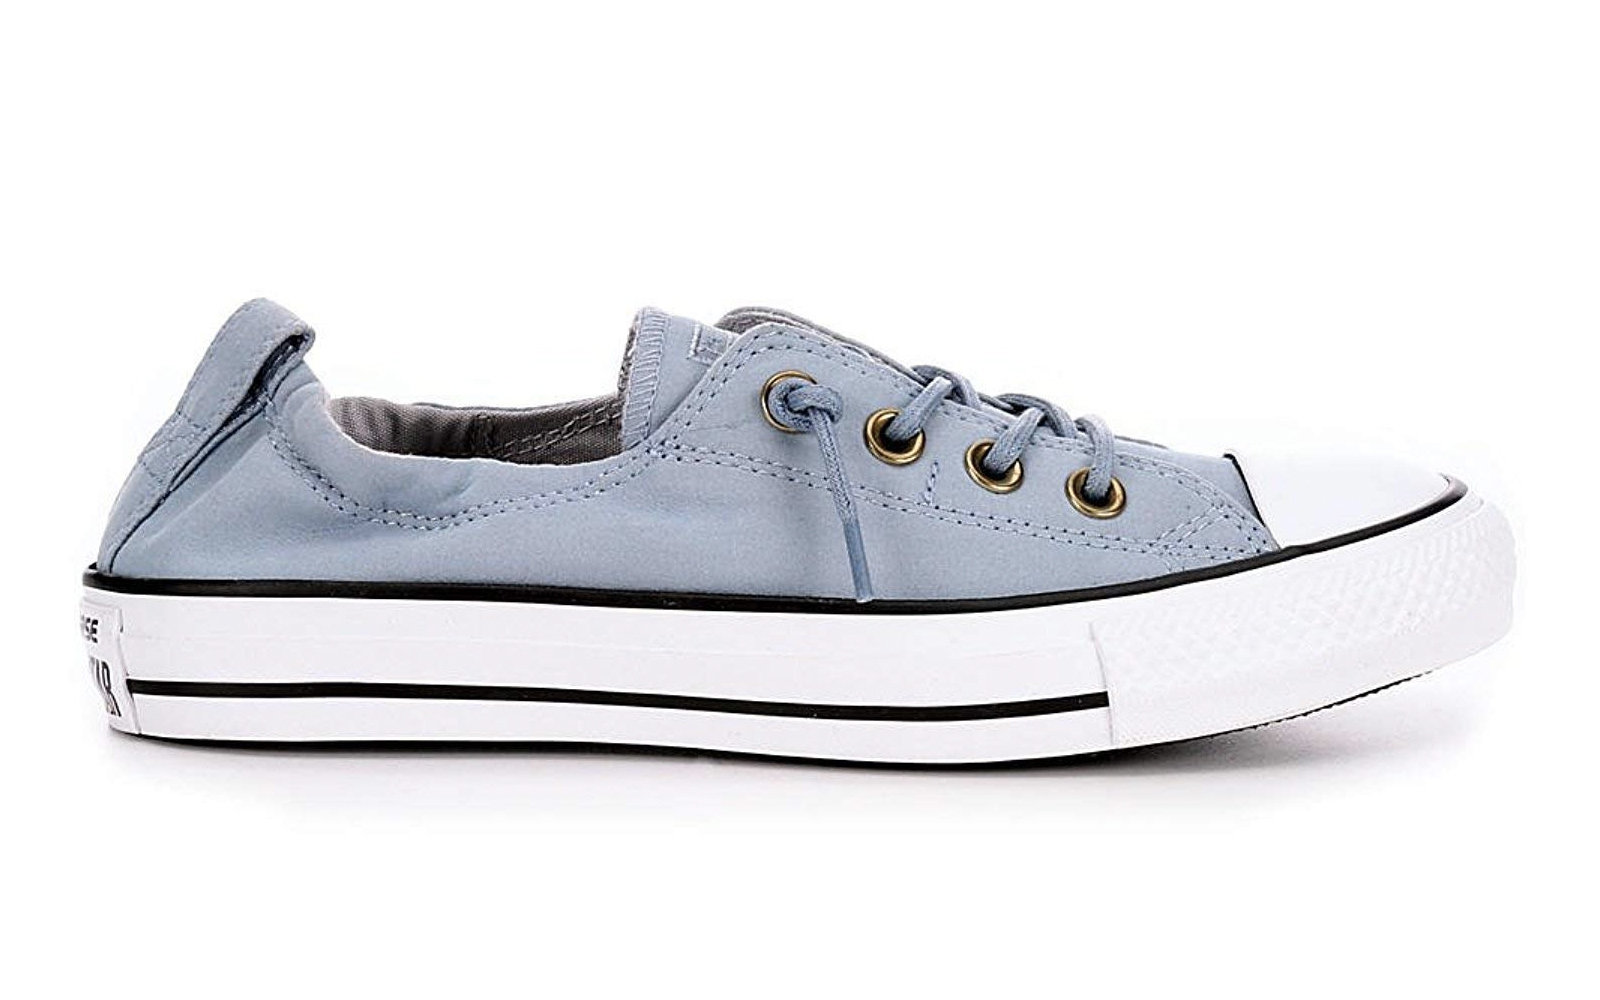 845485de4f1c For a Secret Slip-on  Converse Chuck Taylor All Star Shoreline Sneaker